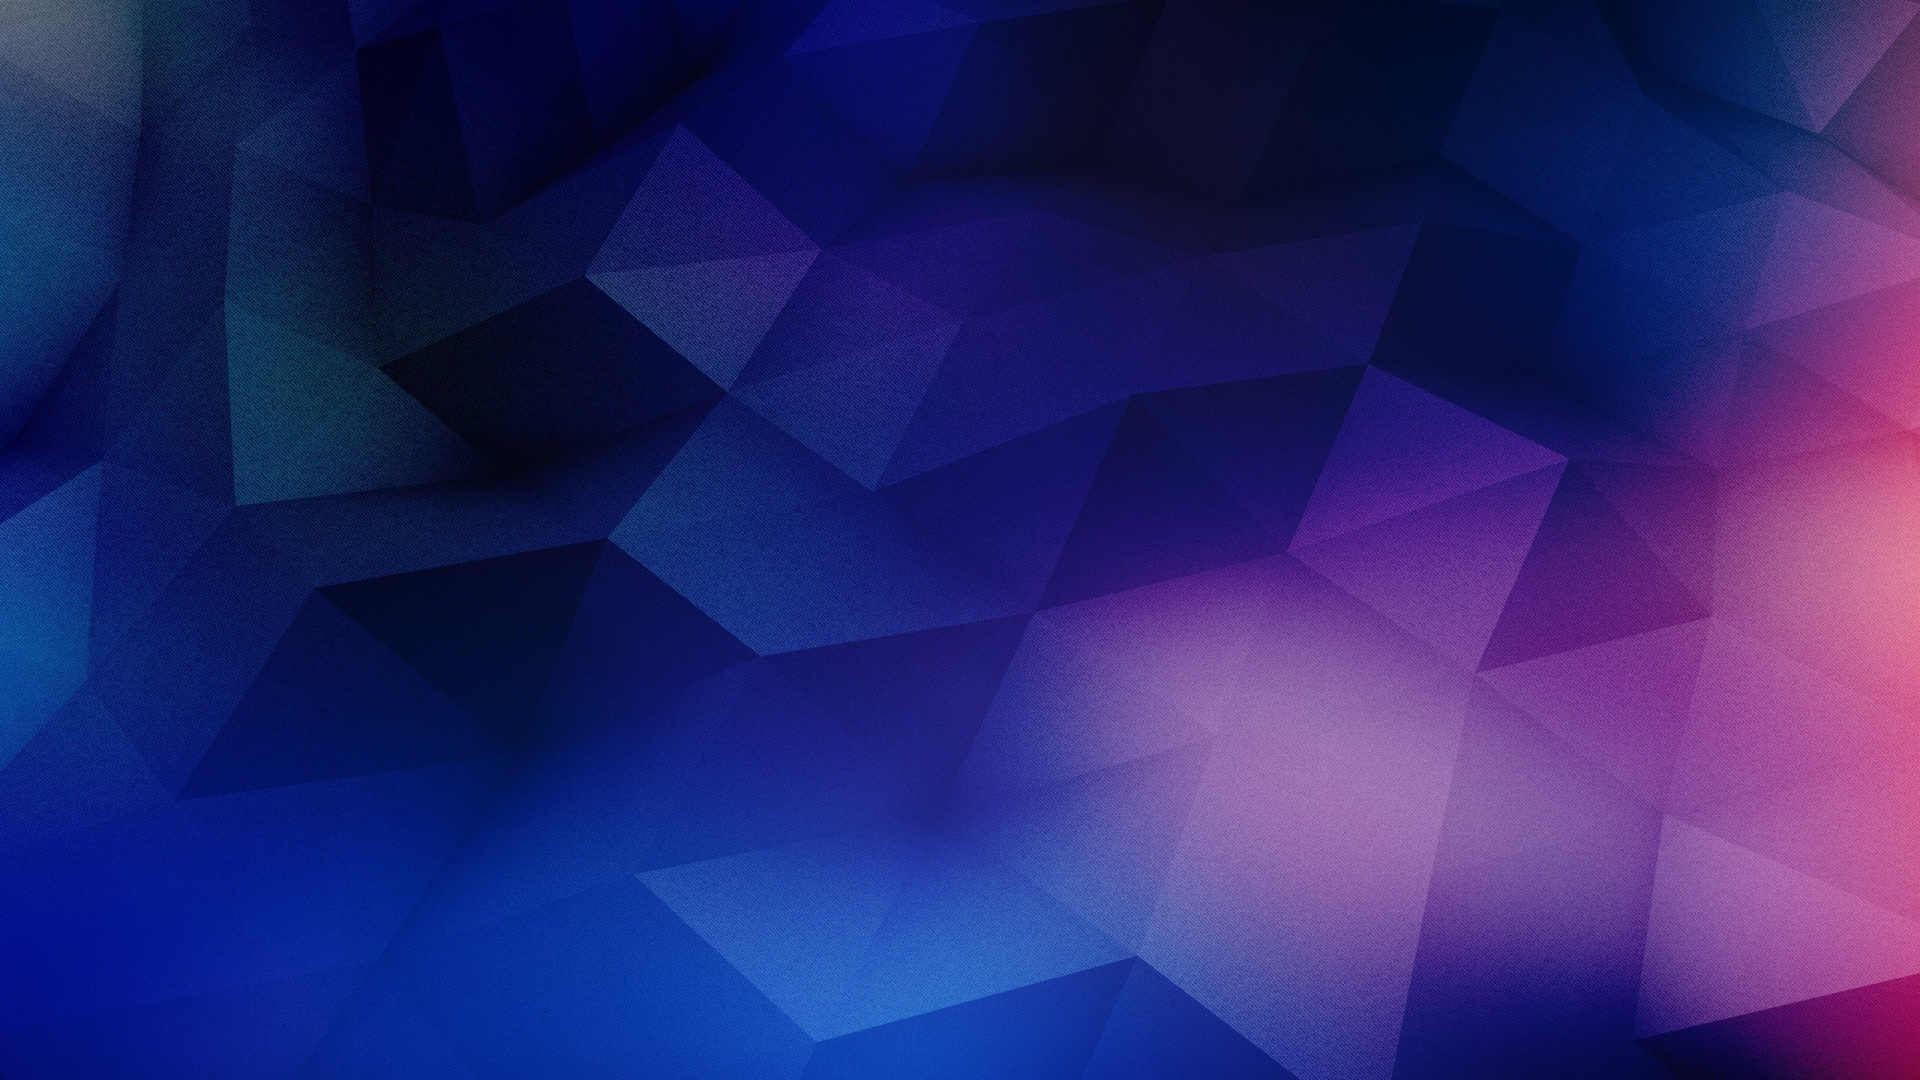 Abstract Polygon Blue With Pink wallpaper